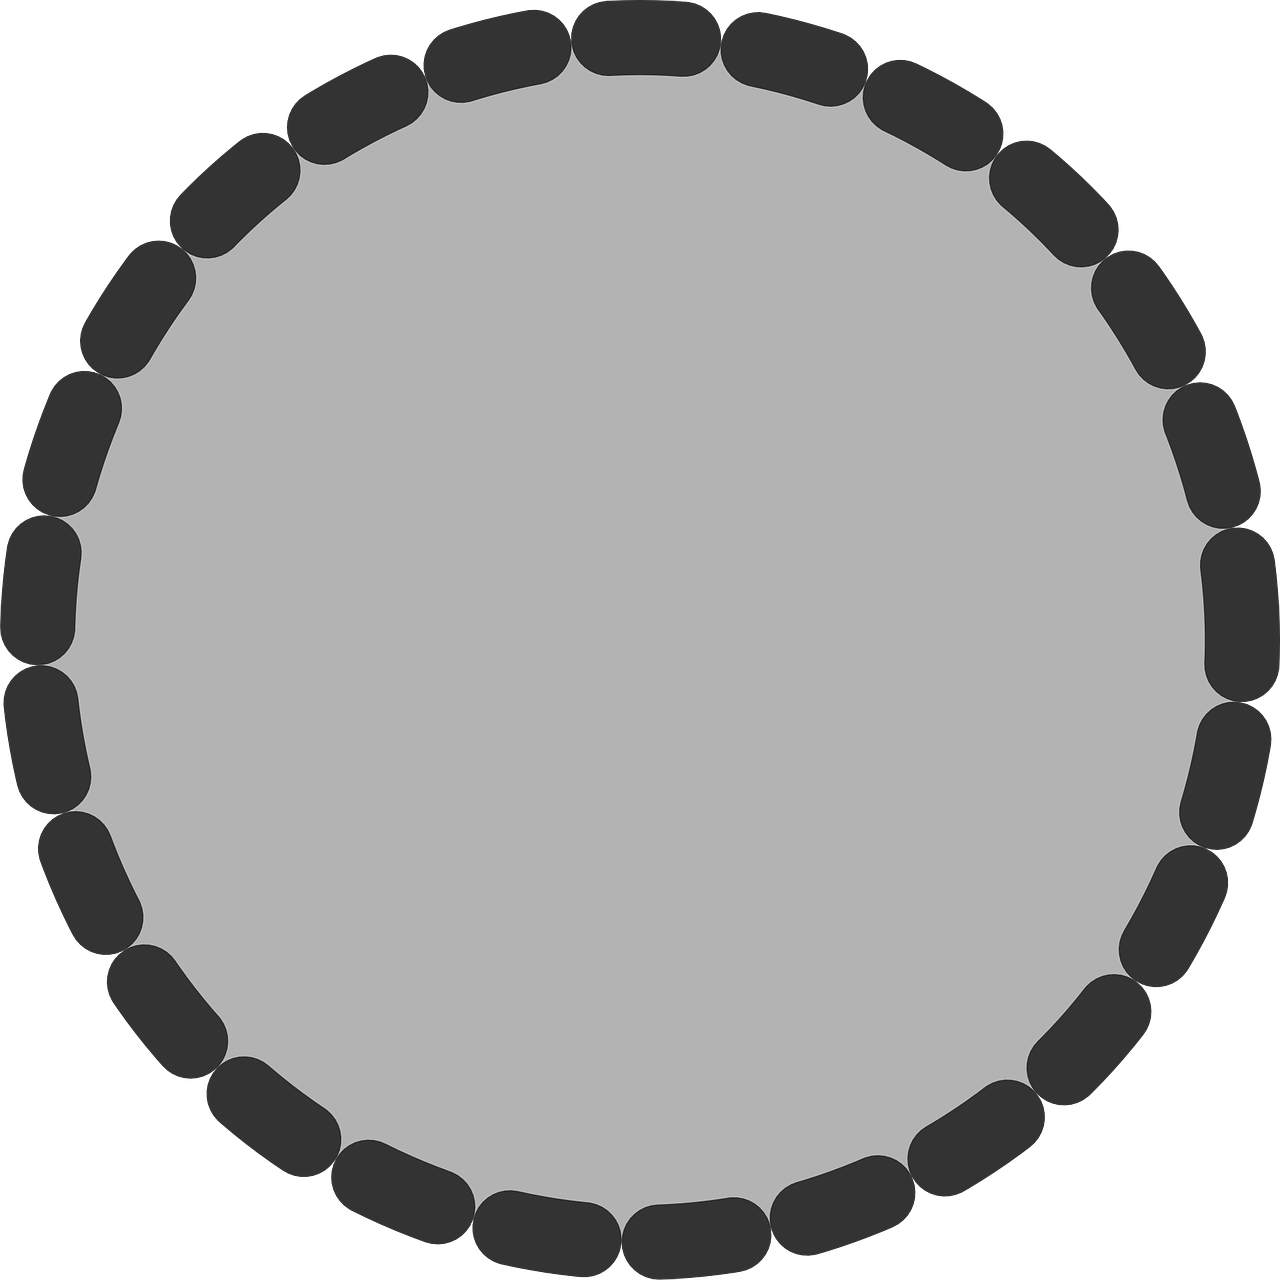 circle round shape free photo